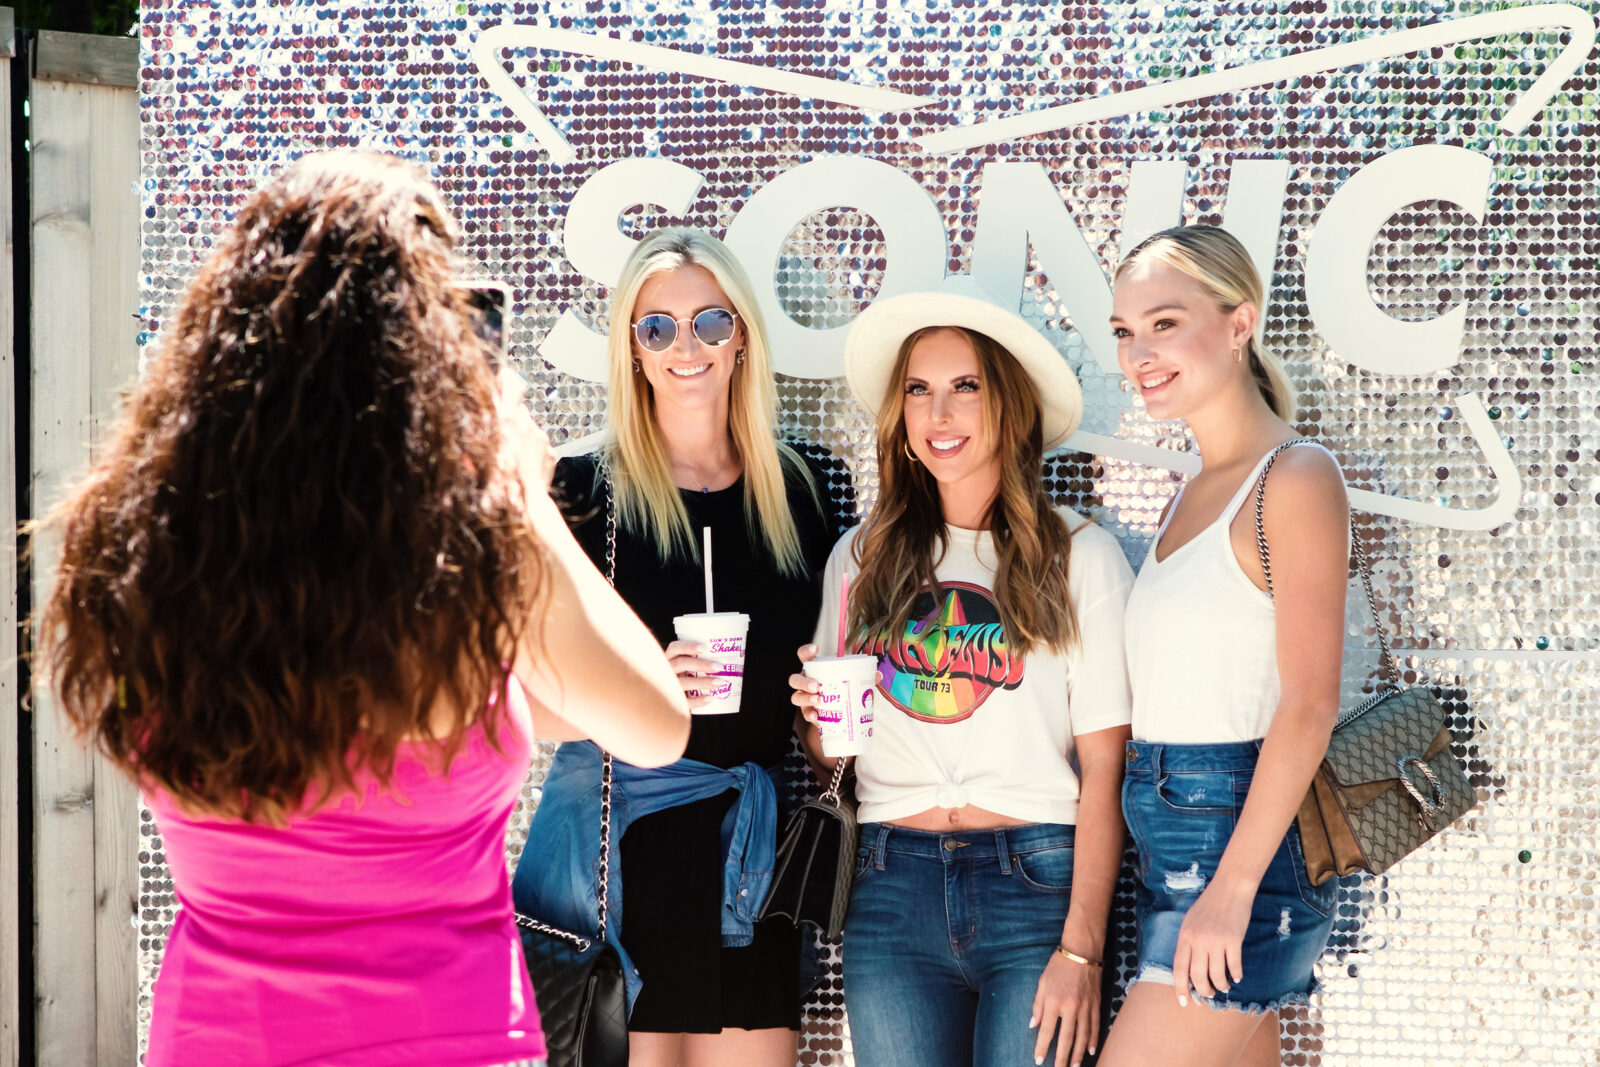 customer photo op at sonic block party experiential marketing event